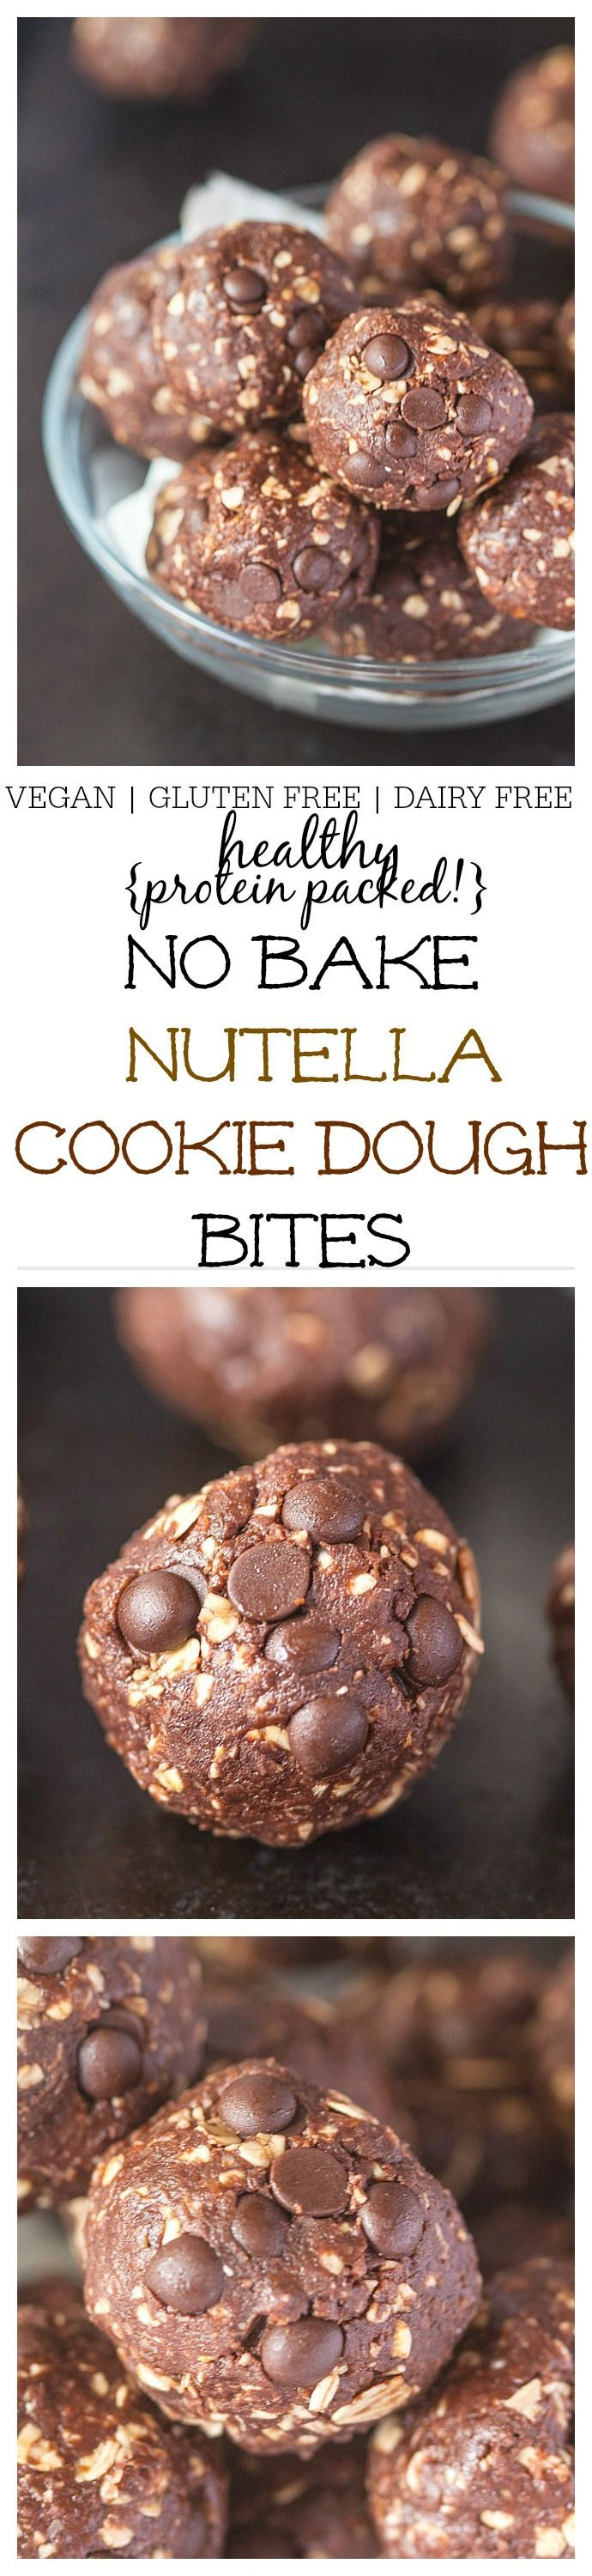 """Healthy {protein packed!} No Bake """"Nutella"""" Cookie Dough Bites which are like popable pieces of fudge but so healthy- Ready in 10 and no refridgeration."""